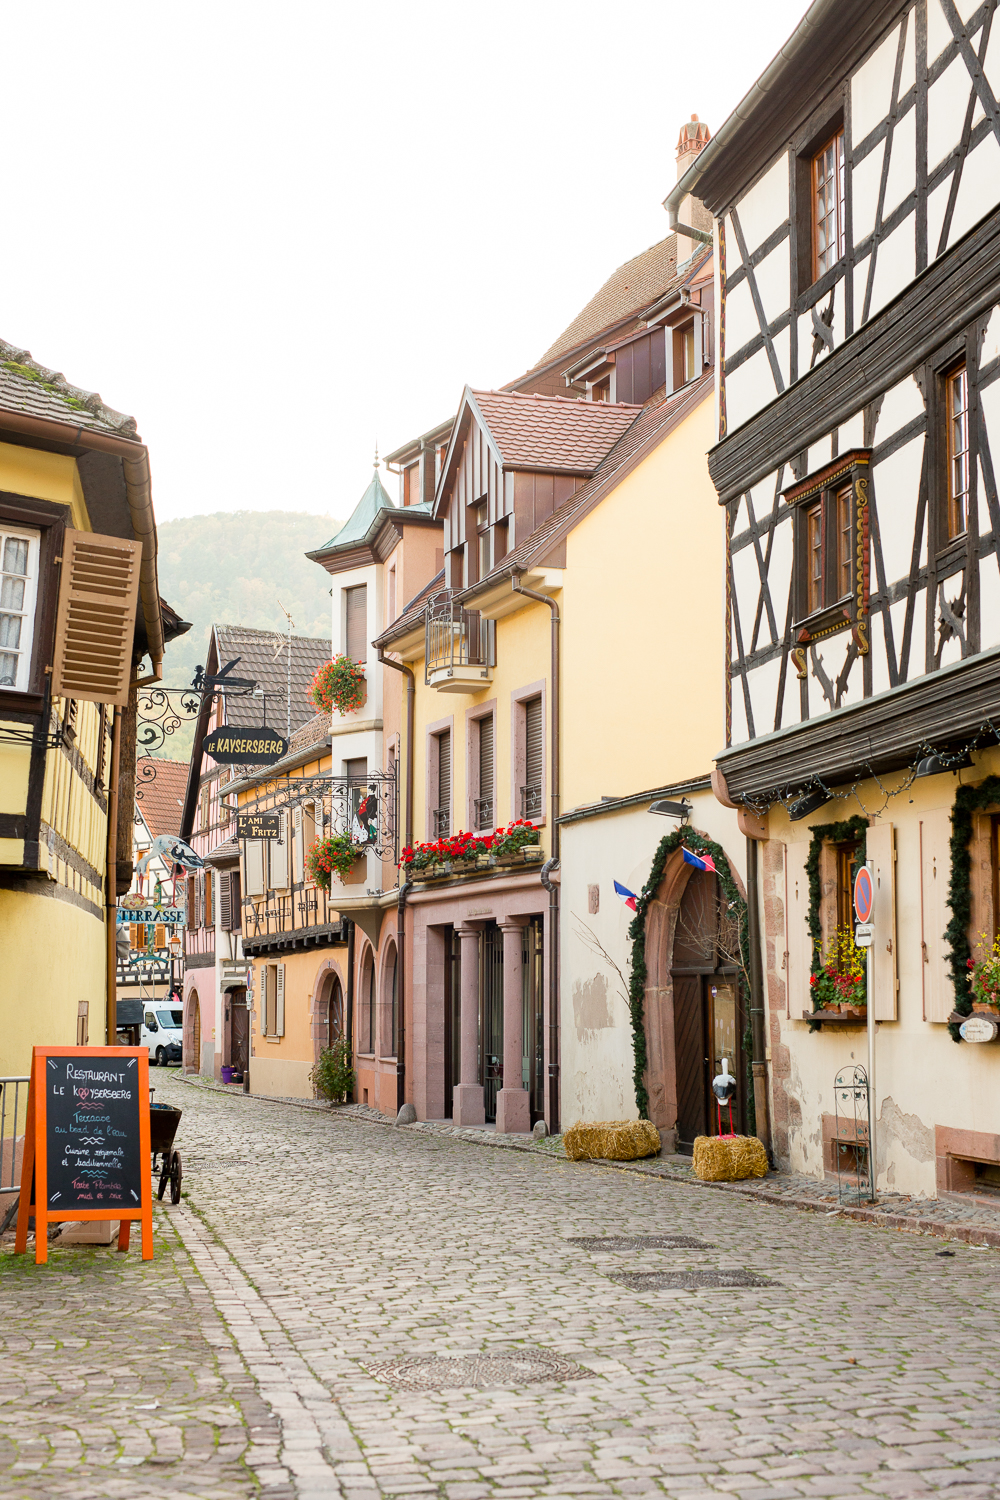 weekend-in-alsace-Kaysersberg-best-place-to-visit-france-10.jpg